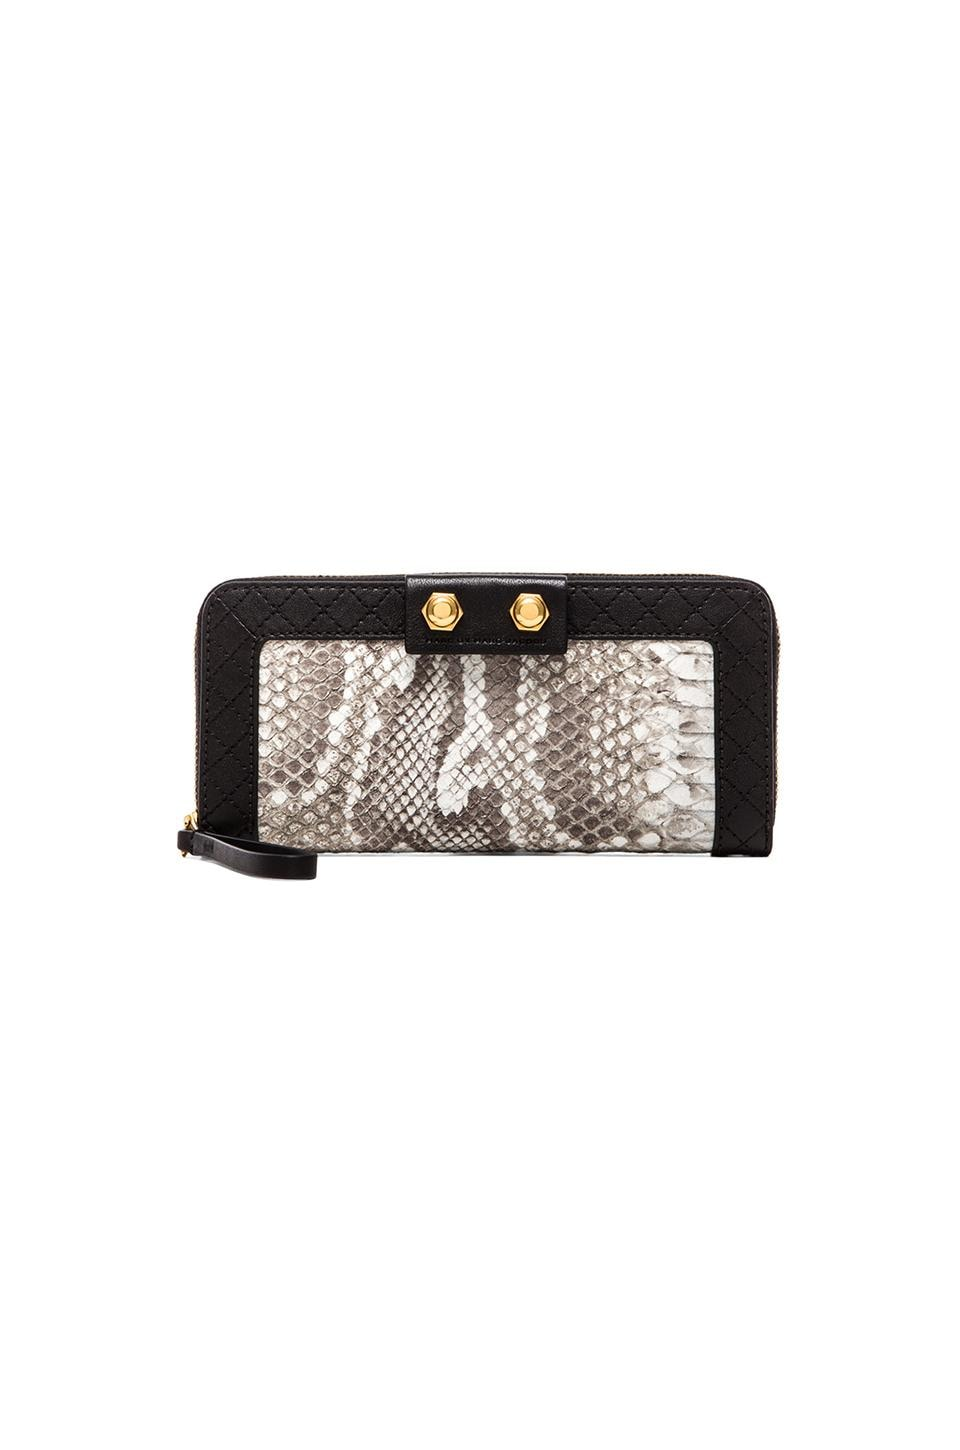 Marc by Marc Jacobs Lady Moto Snake Slim Zip Wallet in Black Multi